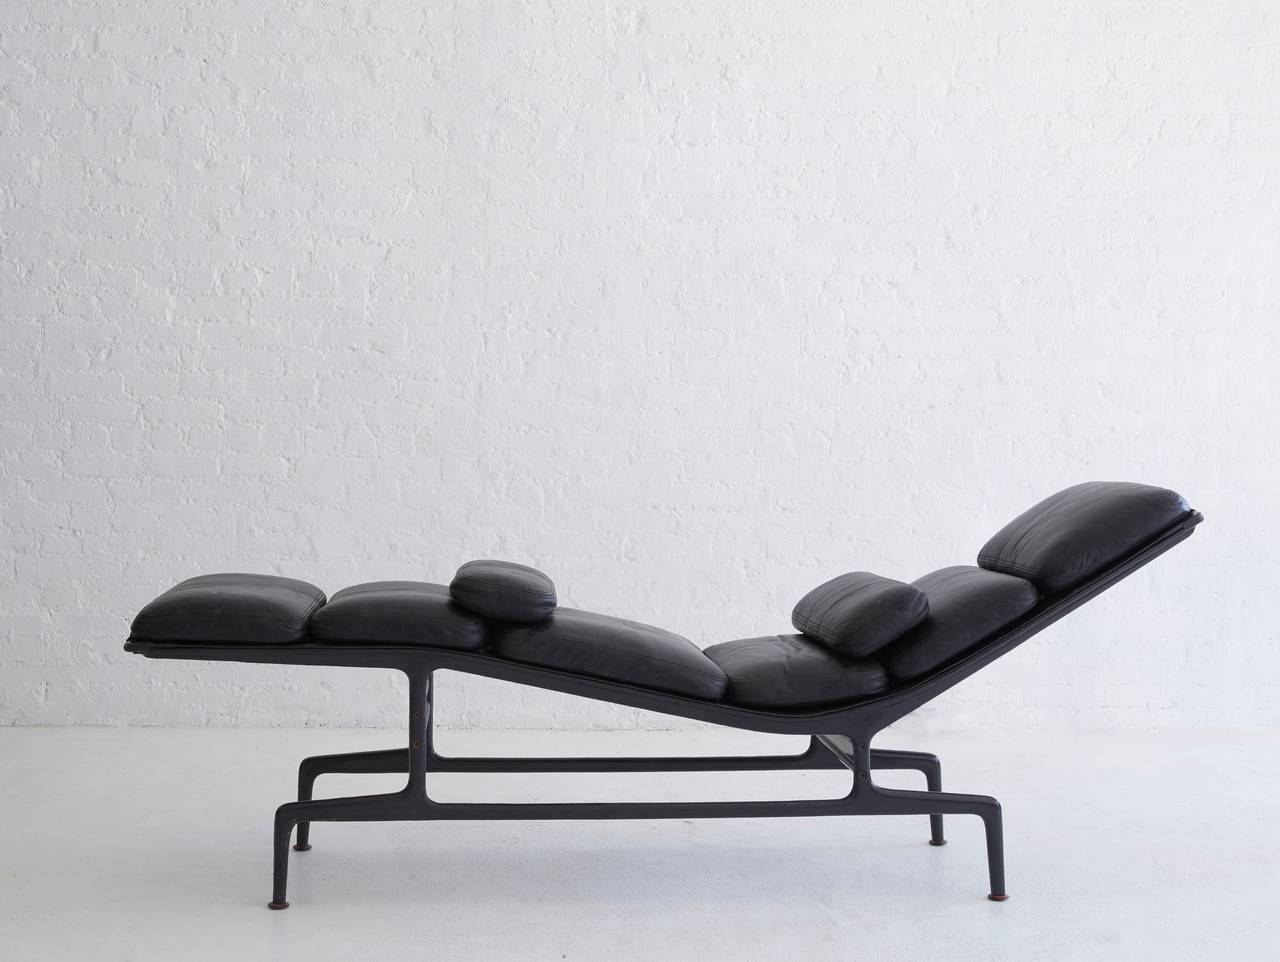 Eames chaise longue for billy wilder at 1stdibs - Chaise eames belgique ...